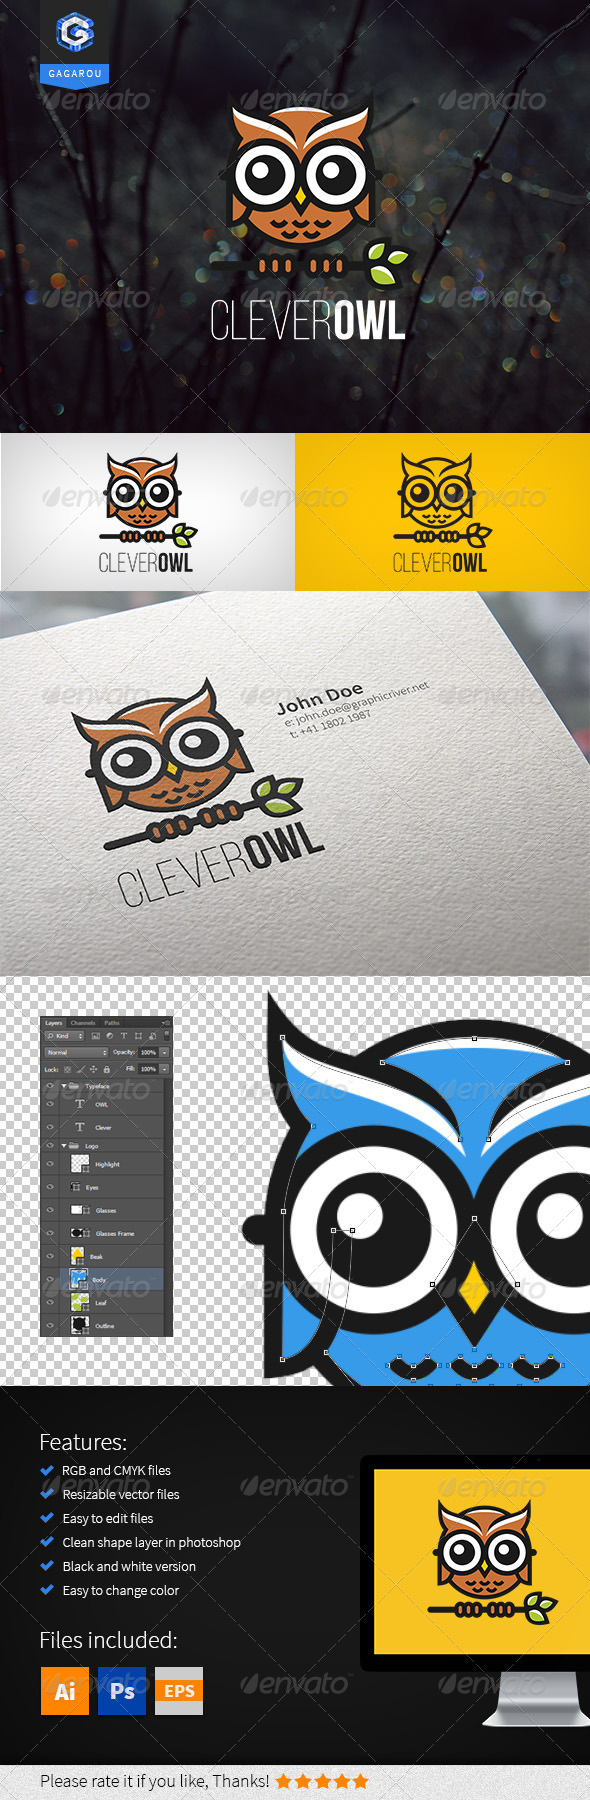 Clever Owl Logo